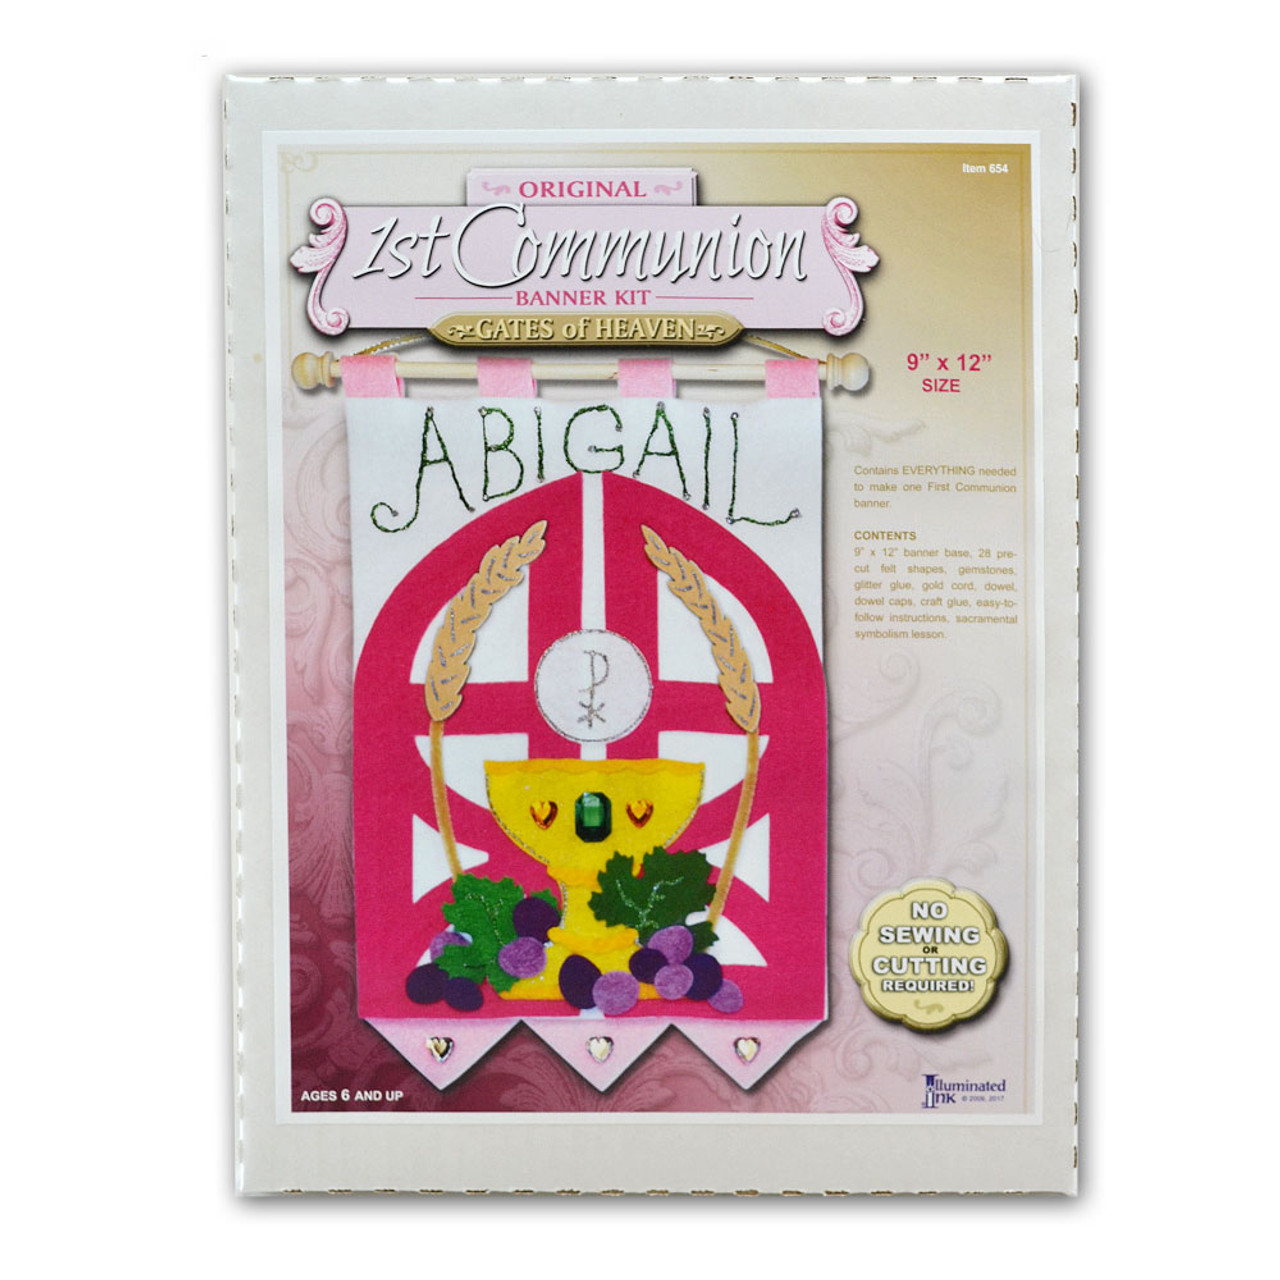 First Communion Banner Kit for Girls